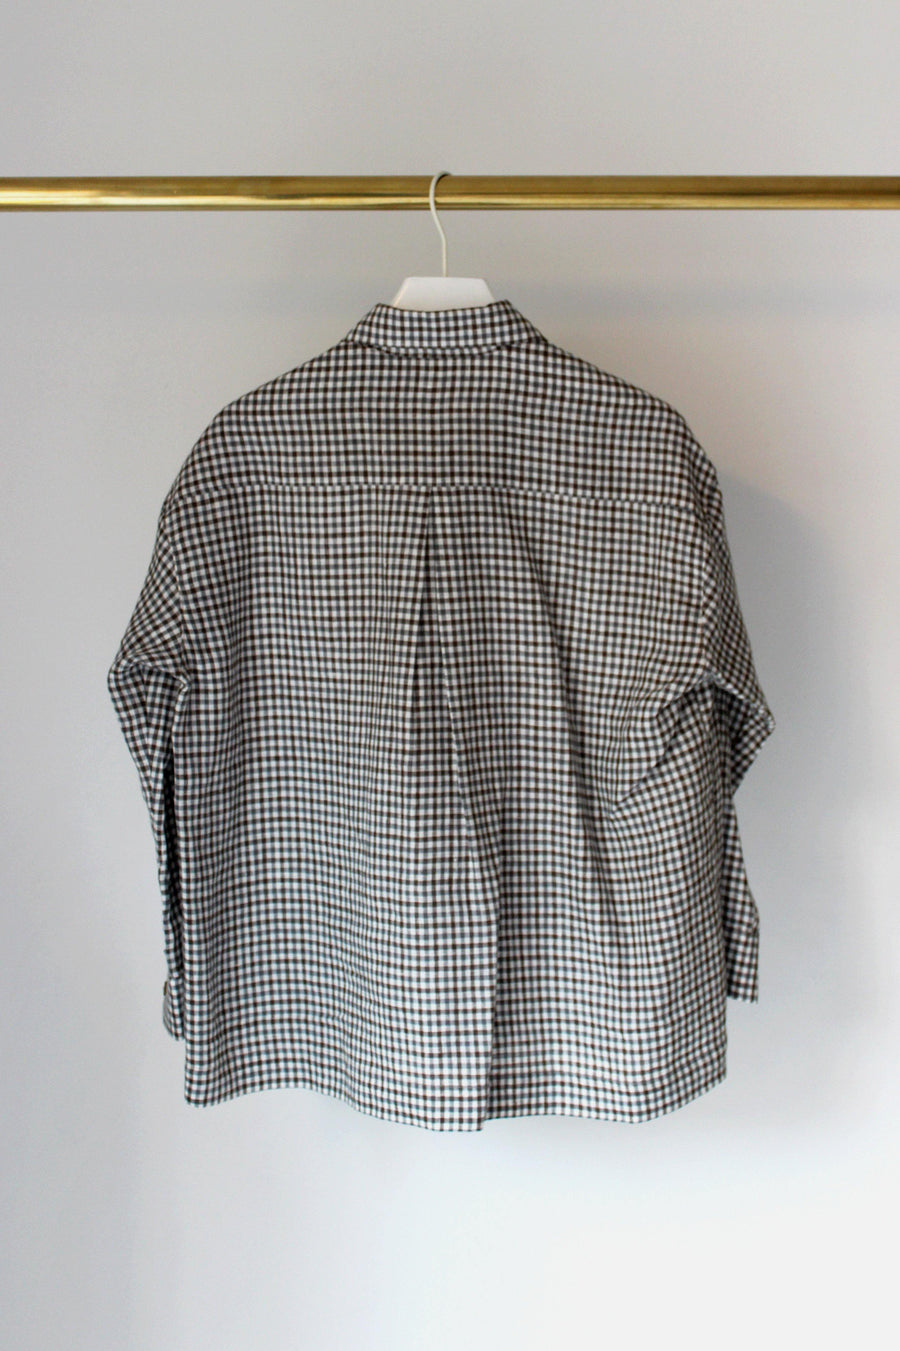 31 CHAPEL LANE Blouse - The Good Store Berlin